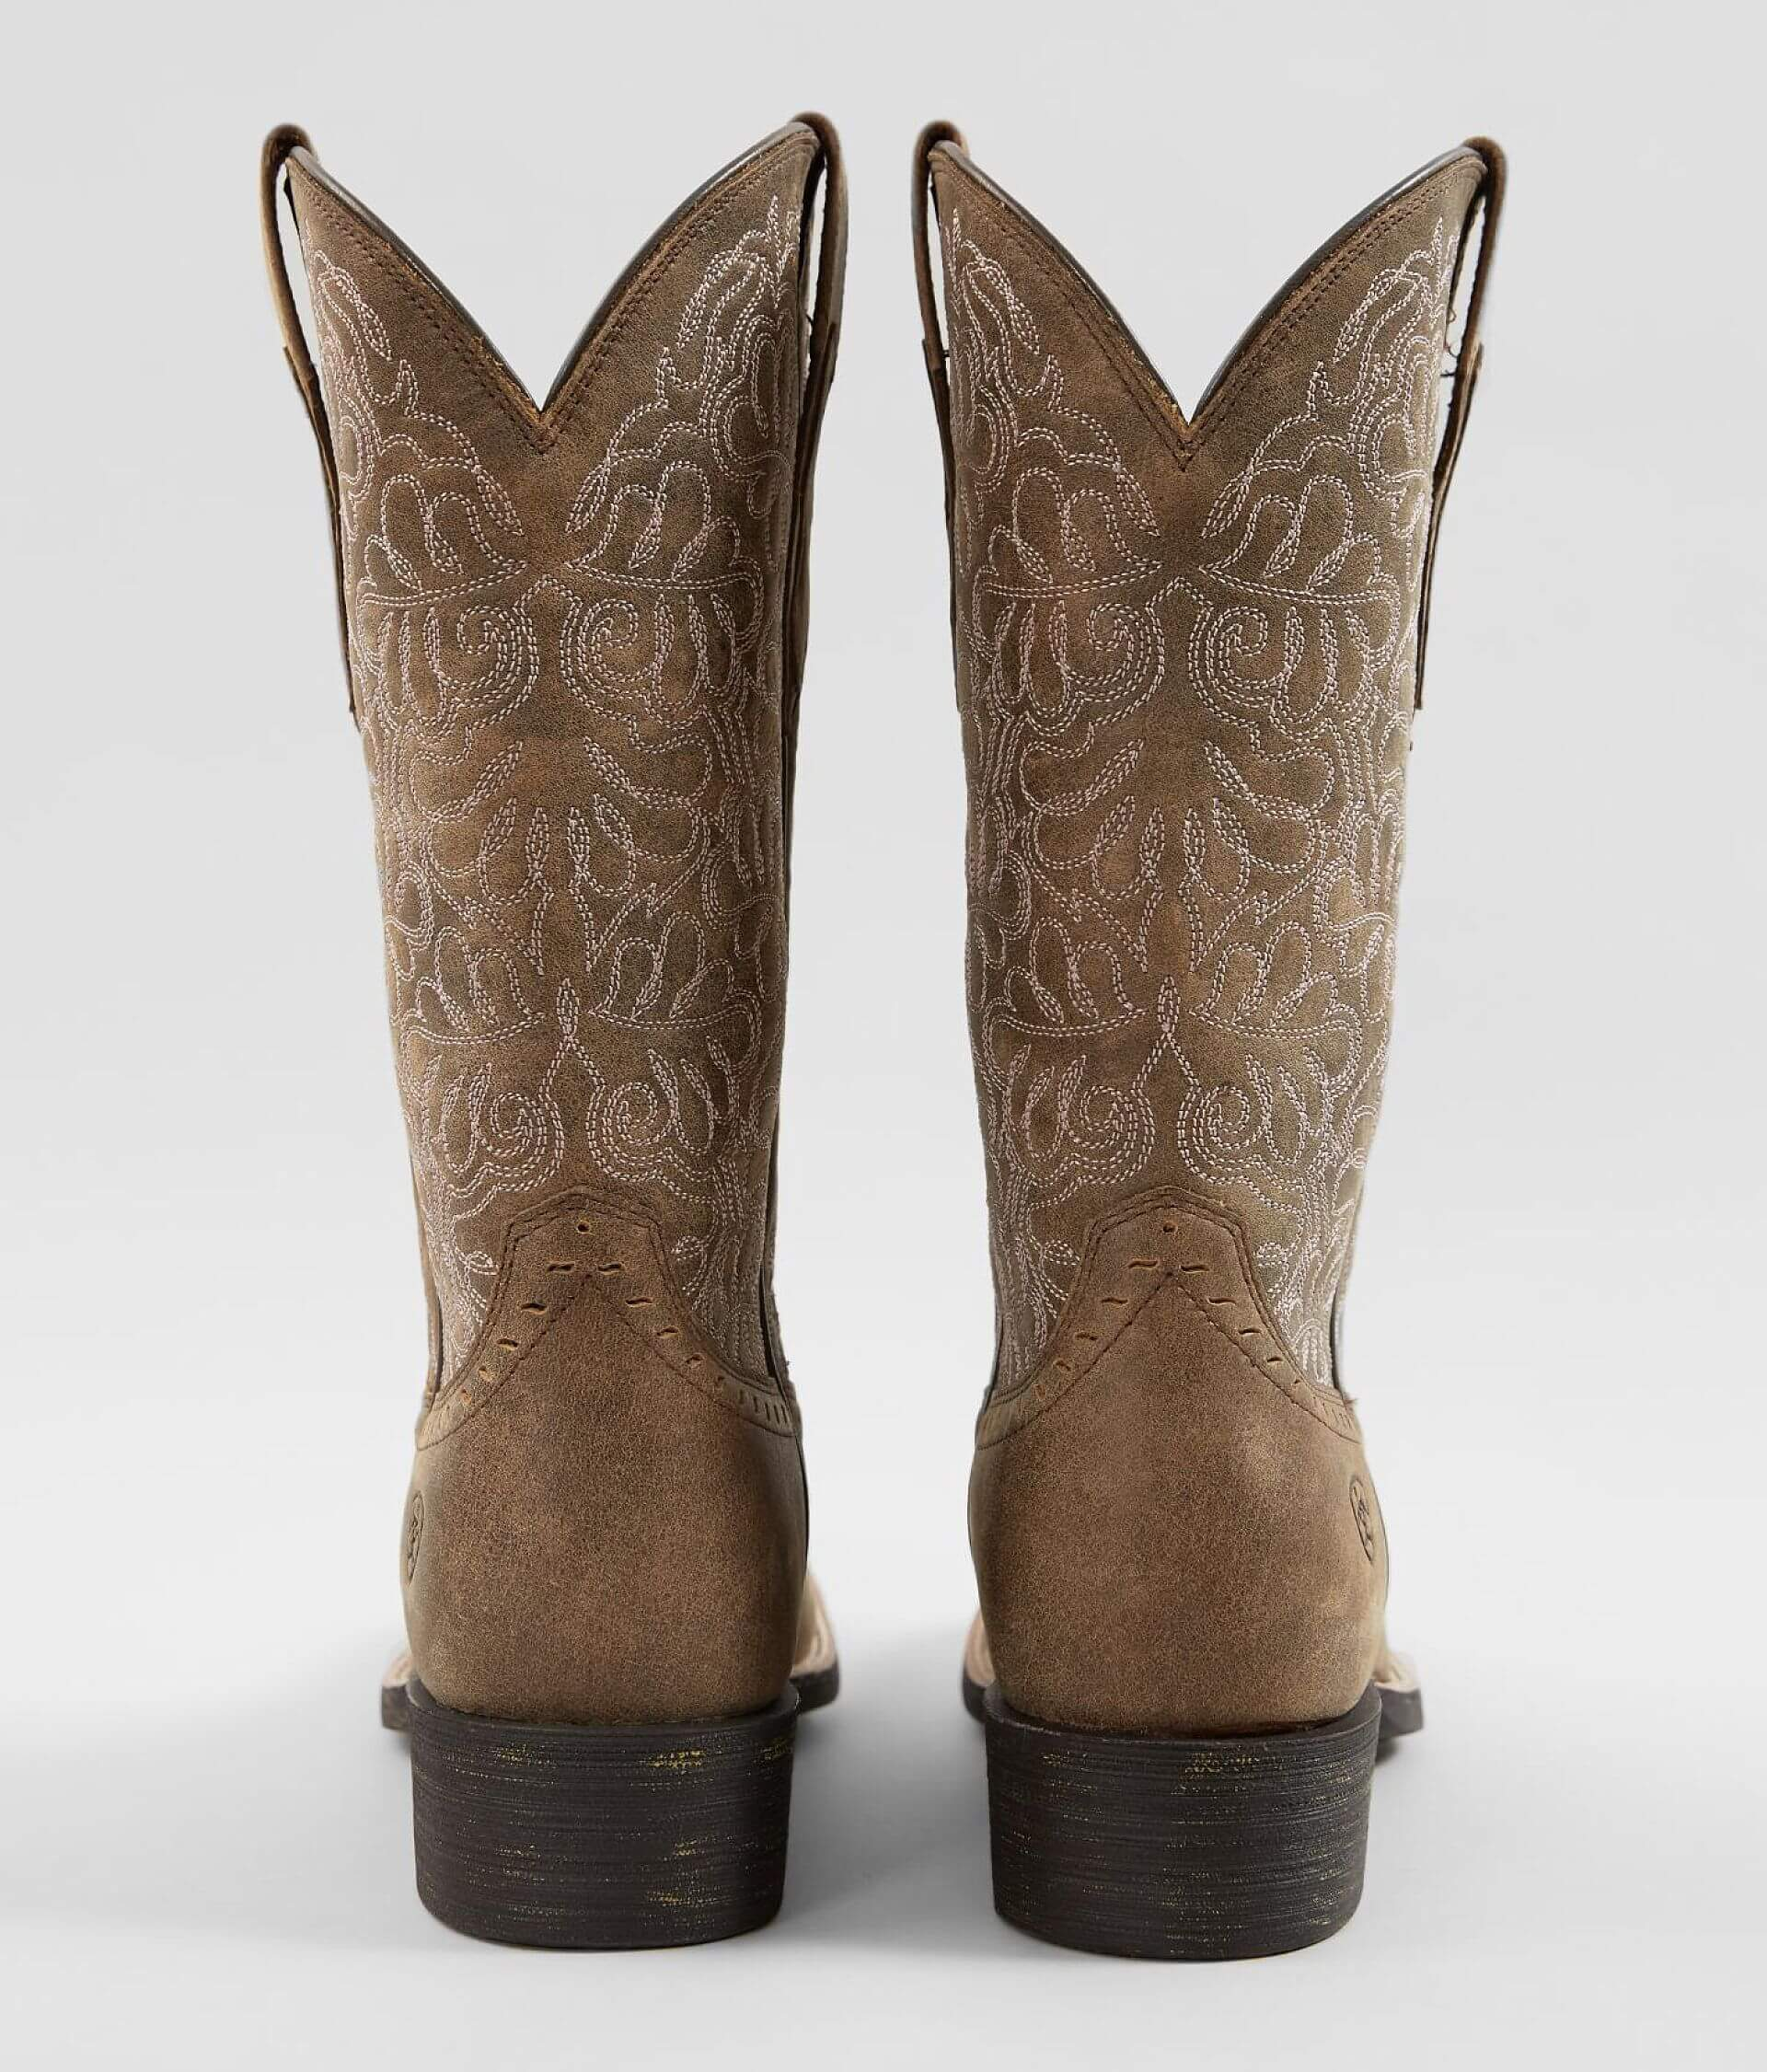 cef780a842d Ariat Round Up Remuda Leather Western Boot - Women's Shoes in Brown ...